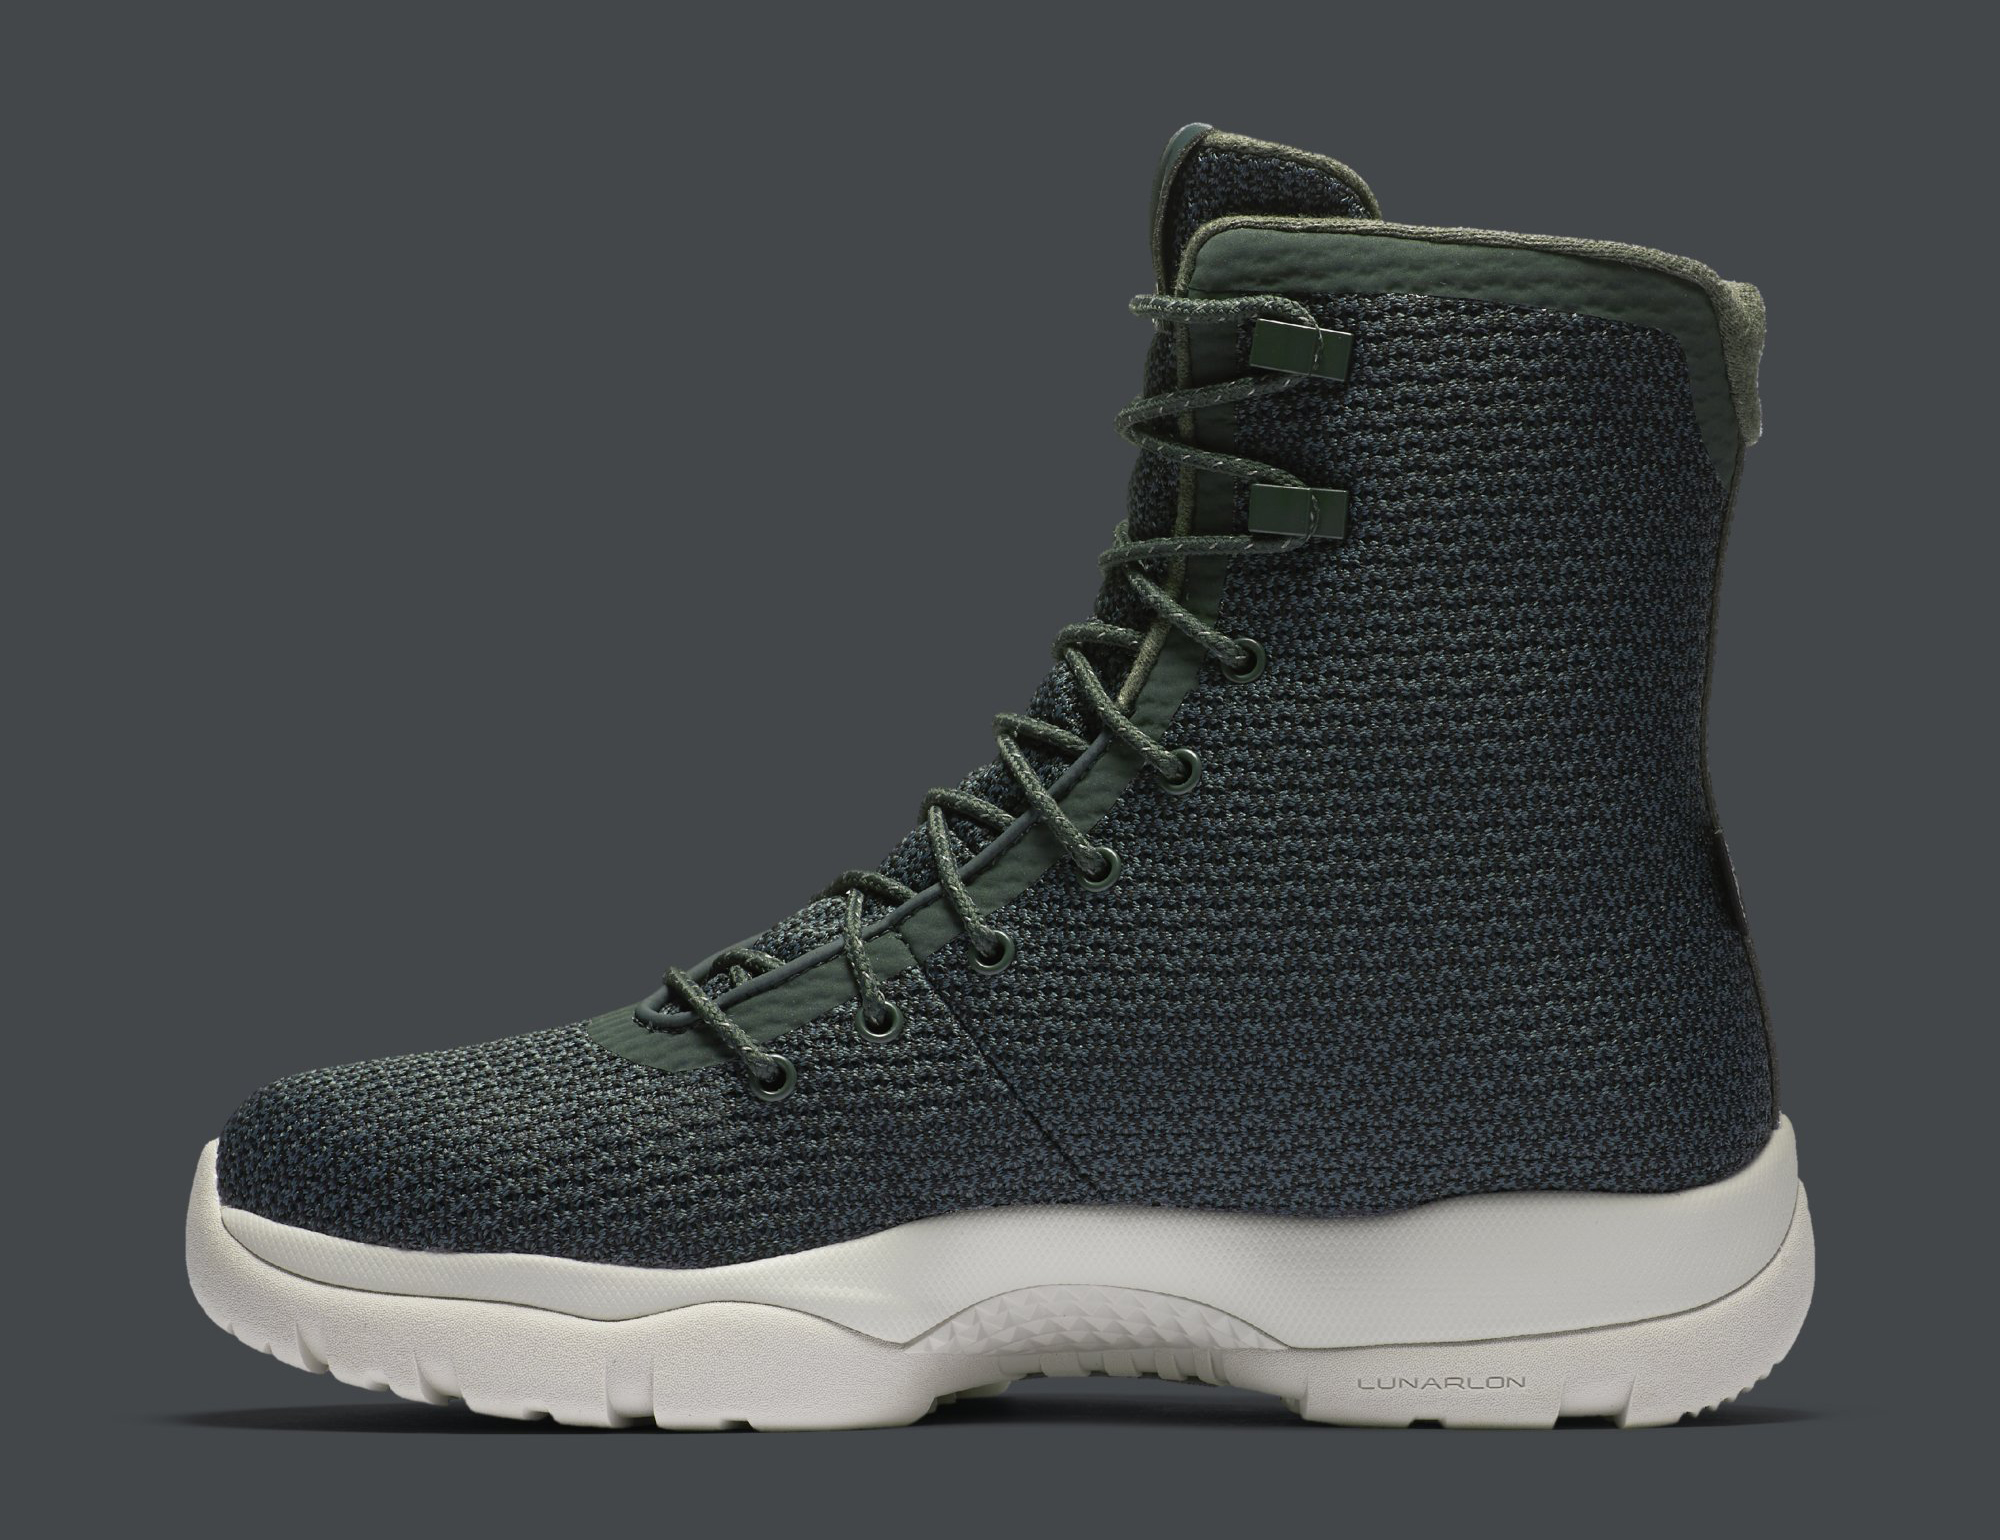 Jordan Future Boot Grove Green 854554-300 Medial